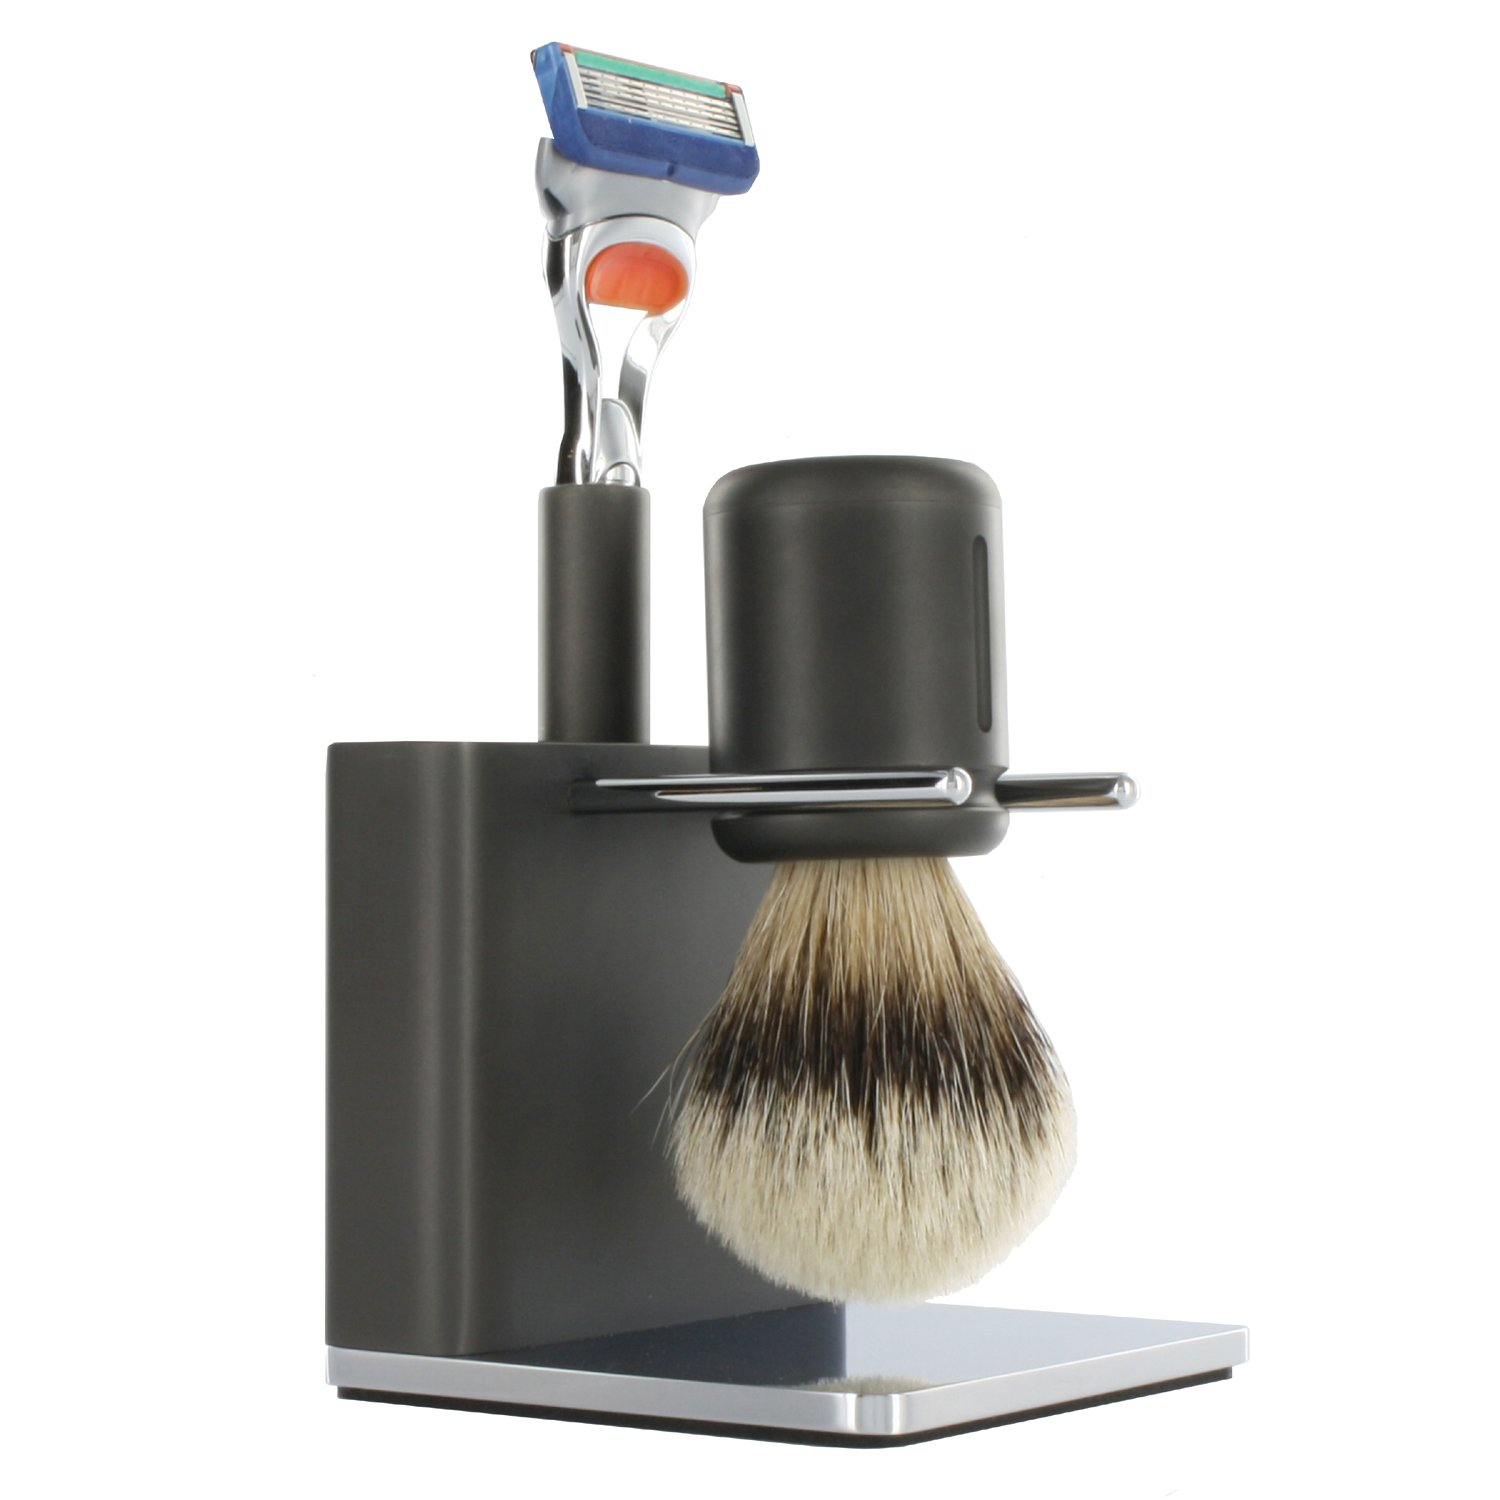 TwinLuxe 'Fine Shaving Instruments' ANTHRACITE Edition Shave Set - includes brush, razor, stand